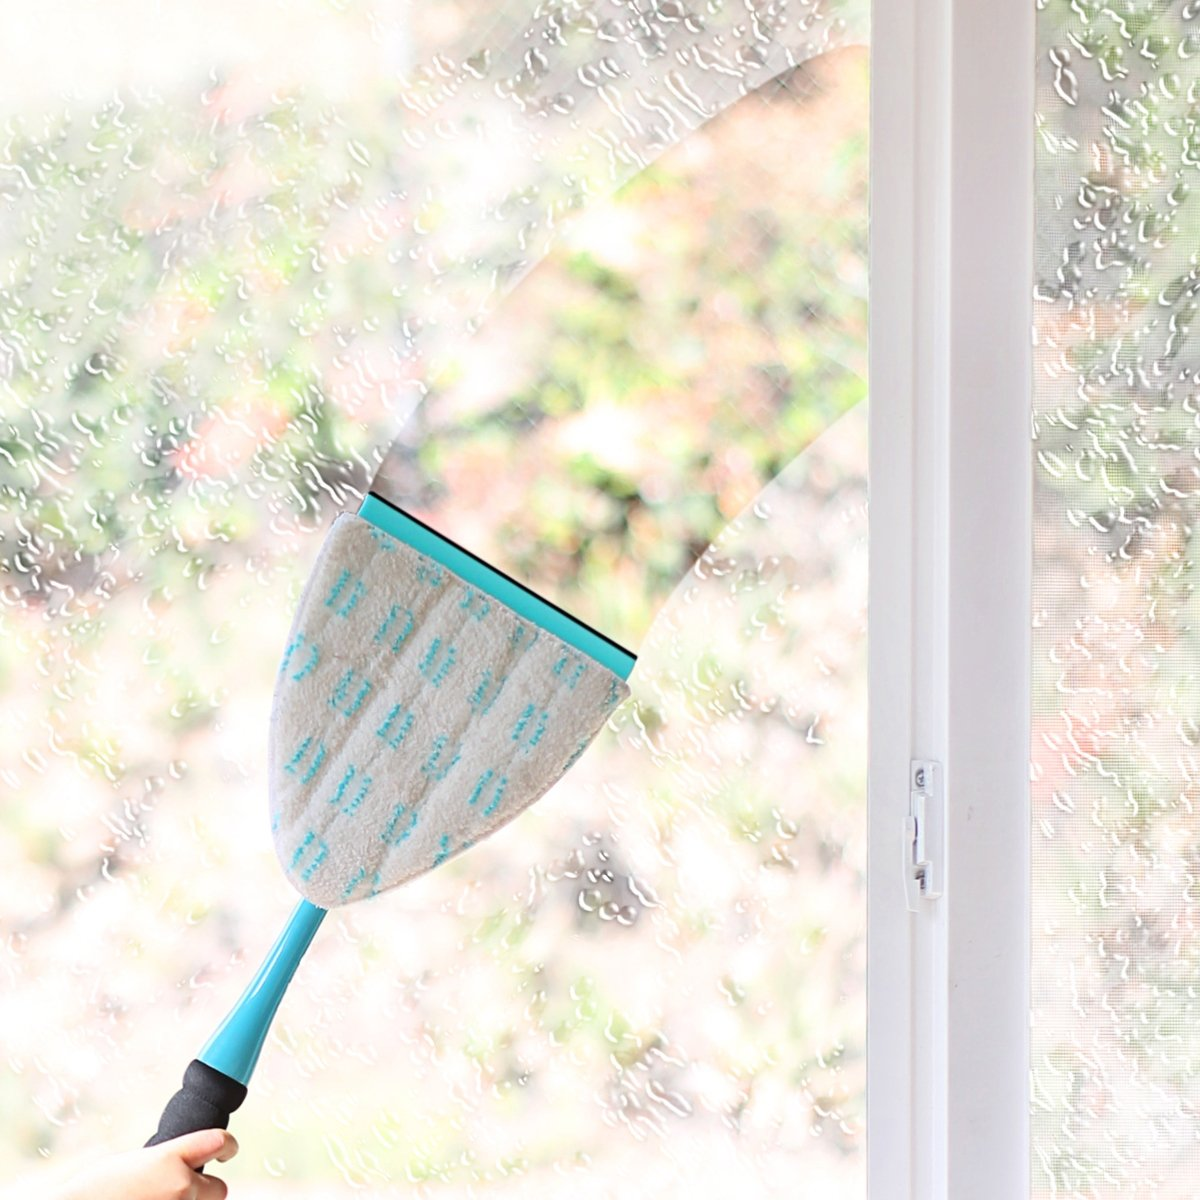 Big E-Z Scrubber - Premium Quality Window & Glass Cleaning Kit-Other Cleaning Supplies-Fuller Brush Company